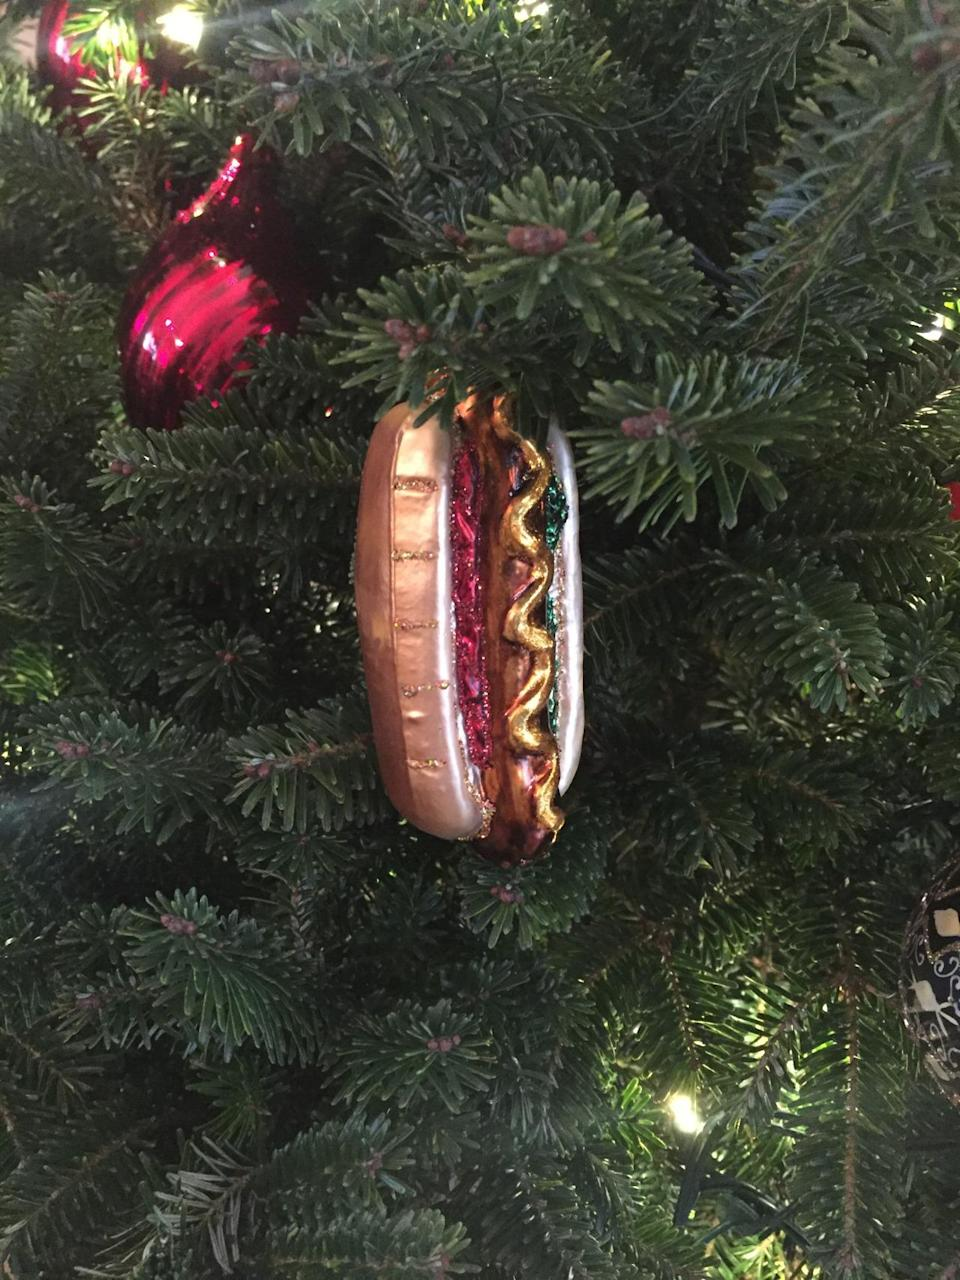 <p>A tree decorated with a theme of dogs features a hot dog ornament. <i>(Photo: Cassie Carothers)</i></p>